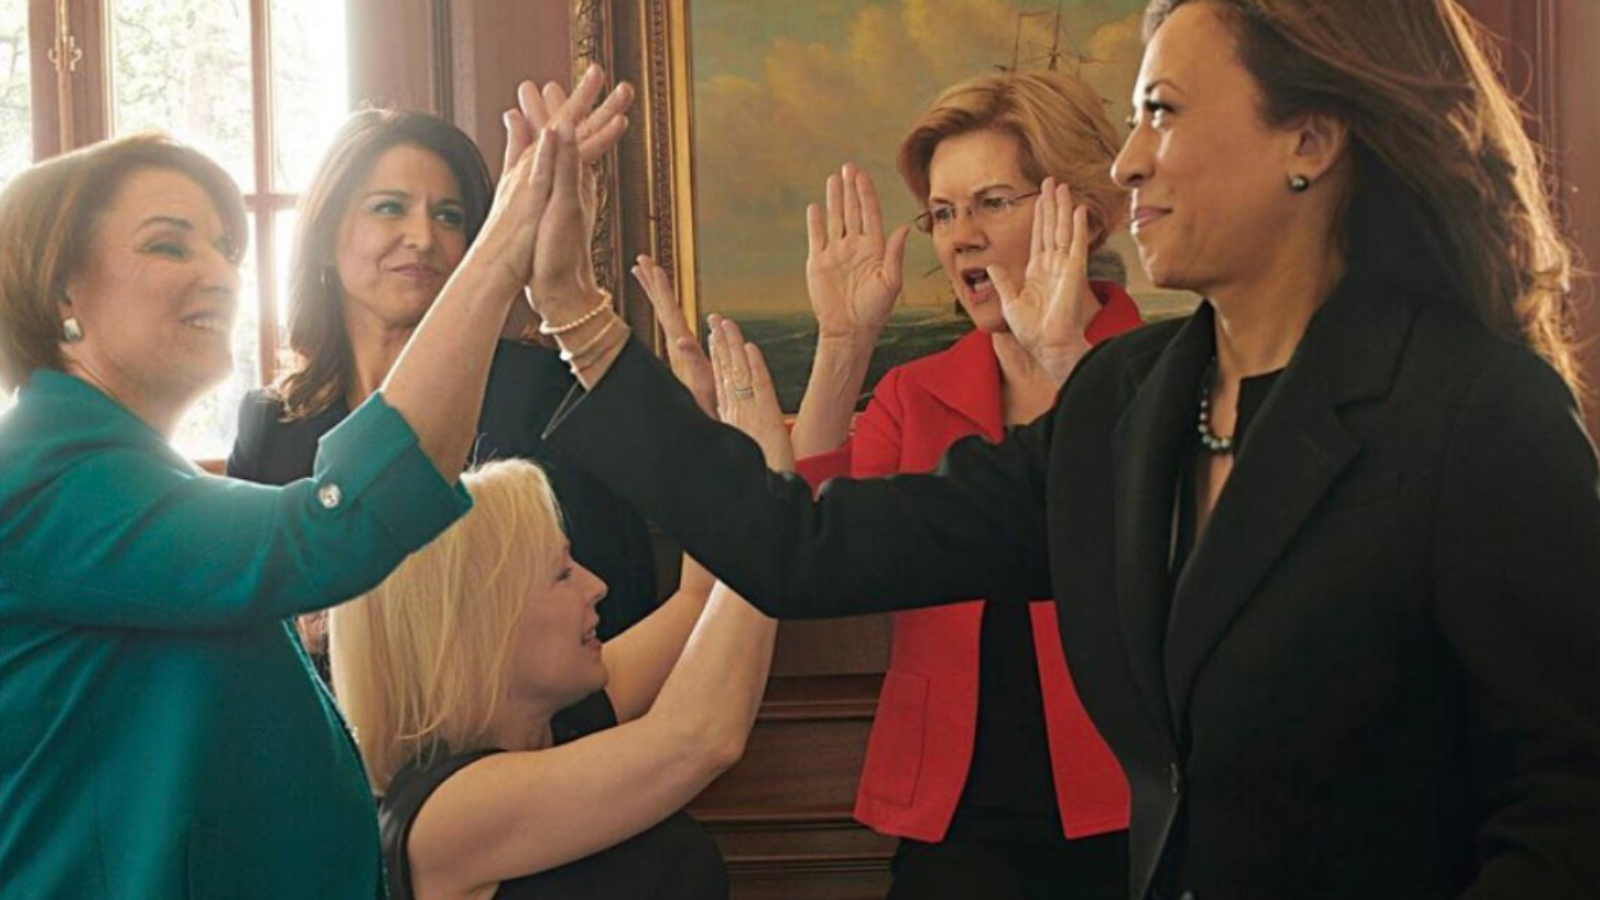 Female political leaders giving each other high-fives